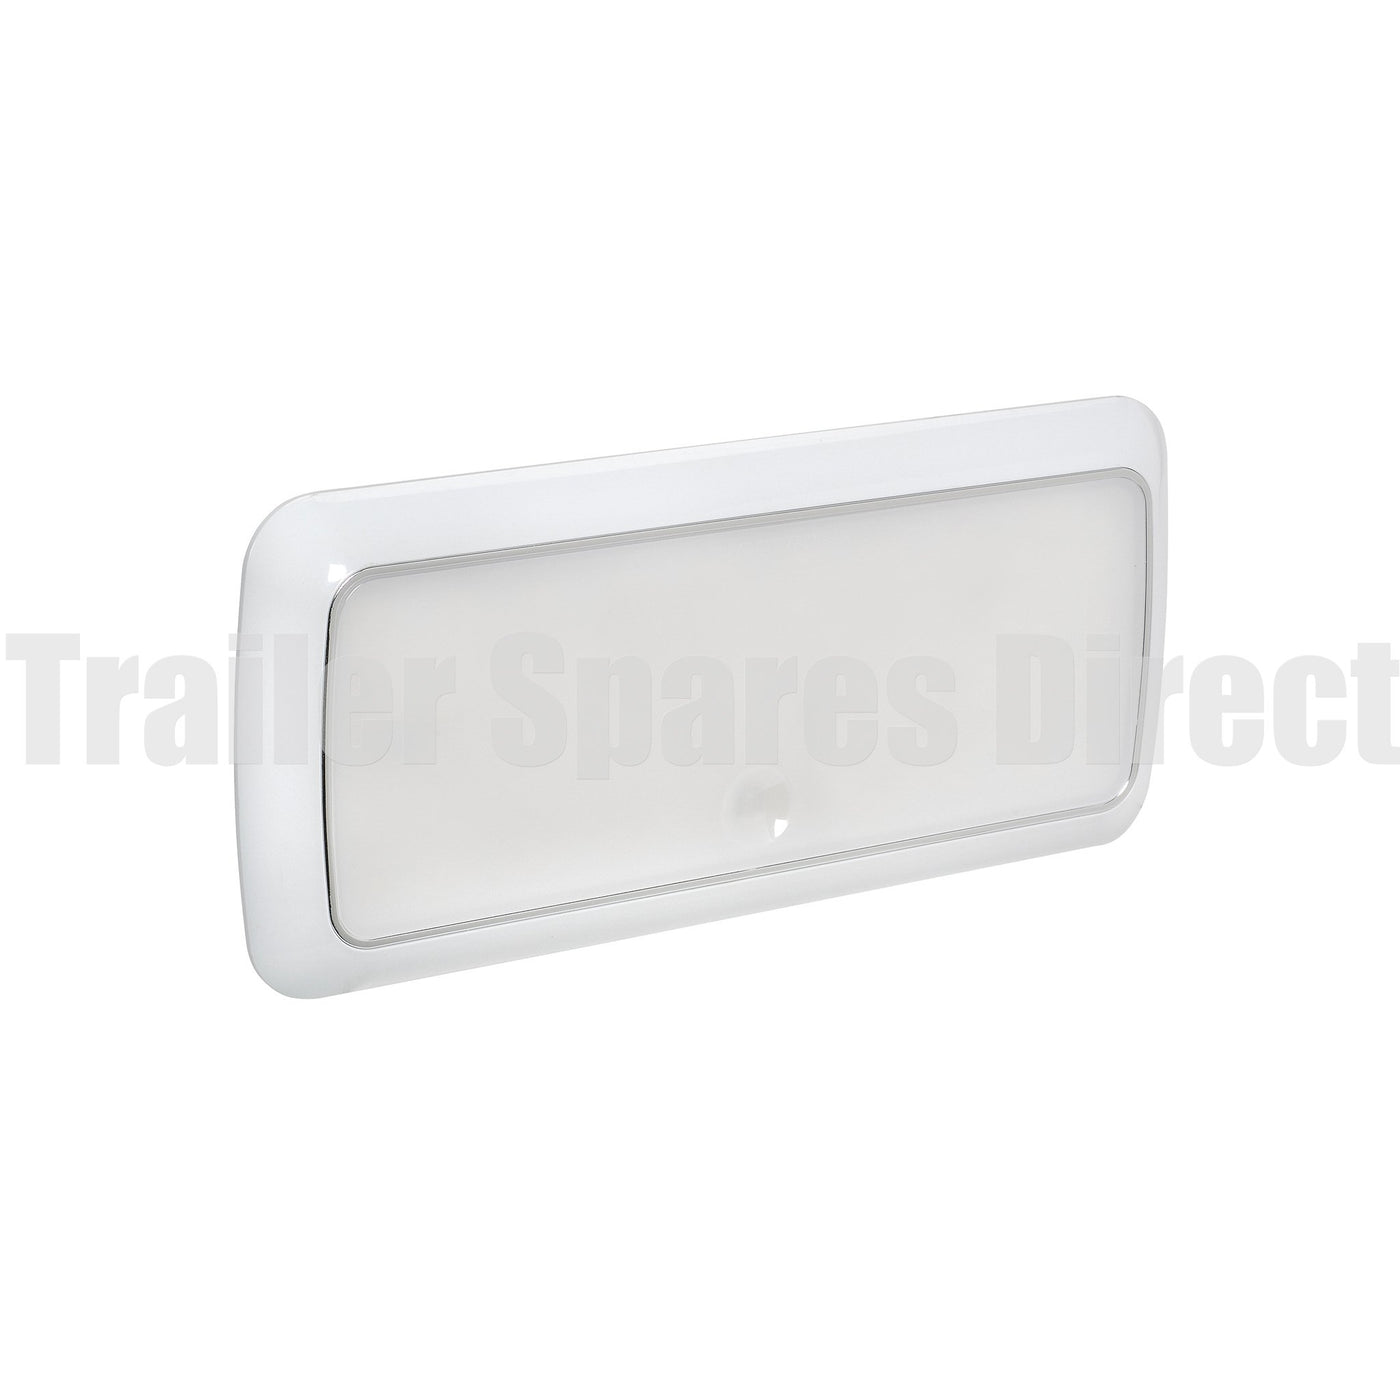 narva 220x100mm rectangular interior touch l trailer spares direct 1.2 Touch Lamps narva saturn 220 x 100mm rectangular led 12 volt interior l touch switch